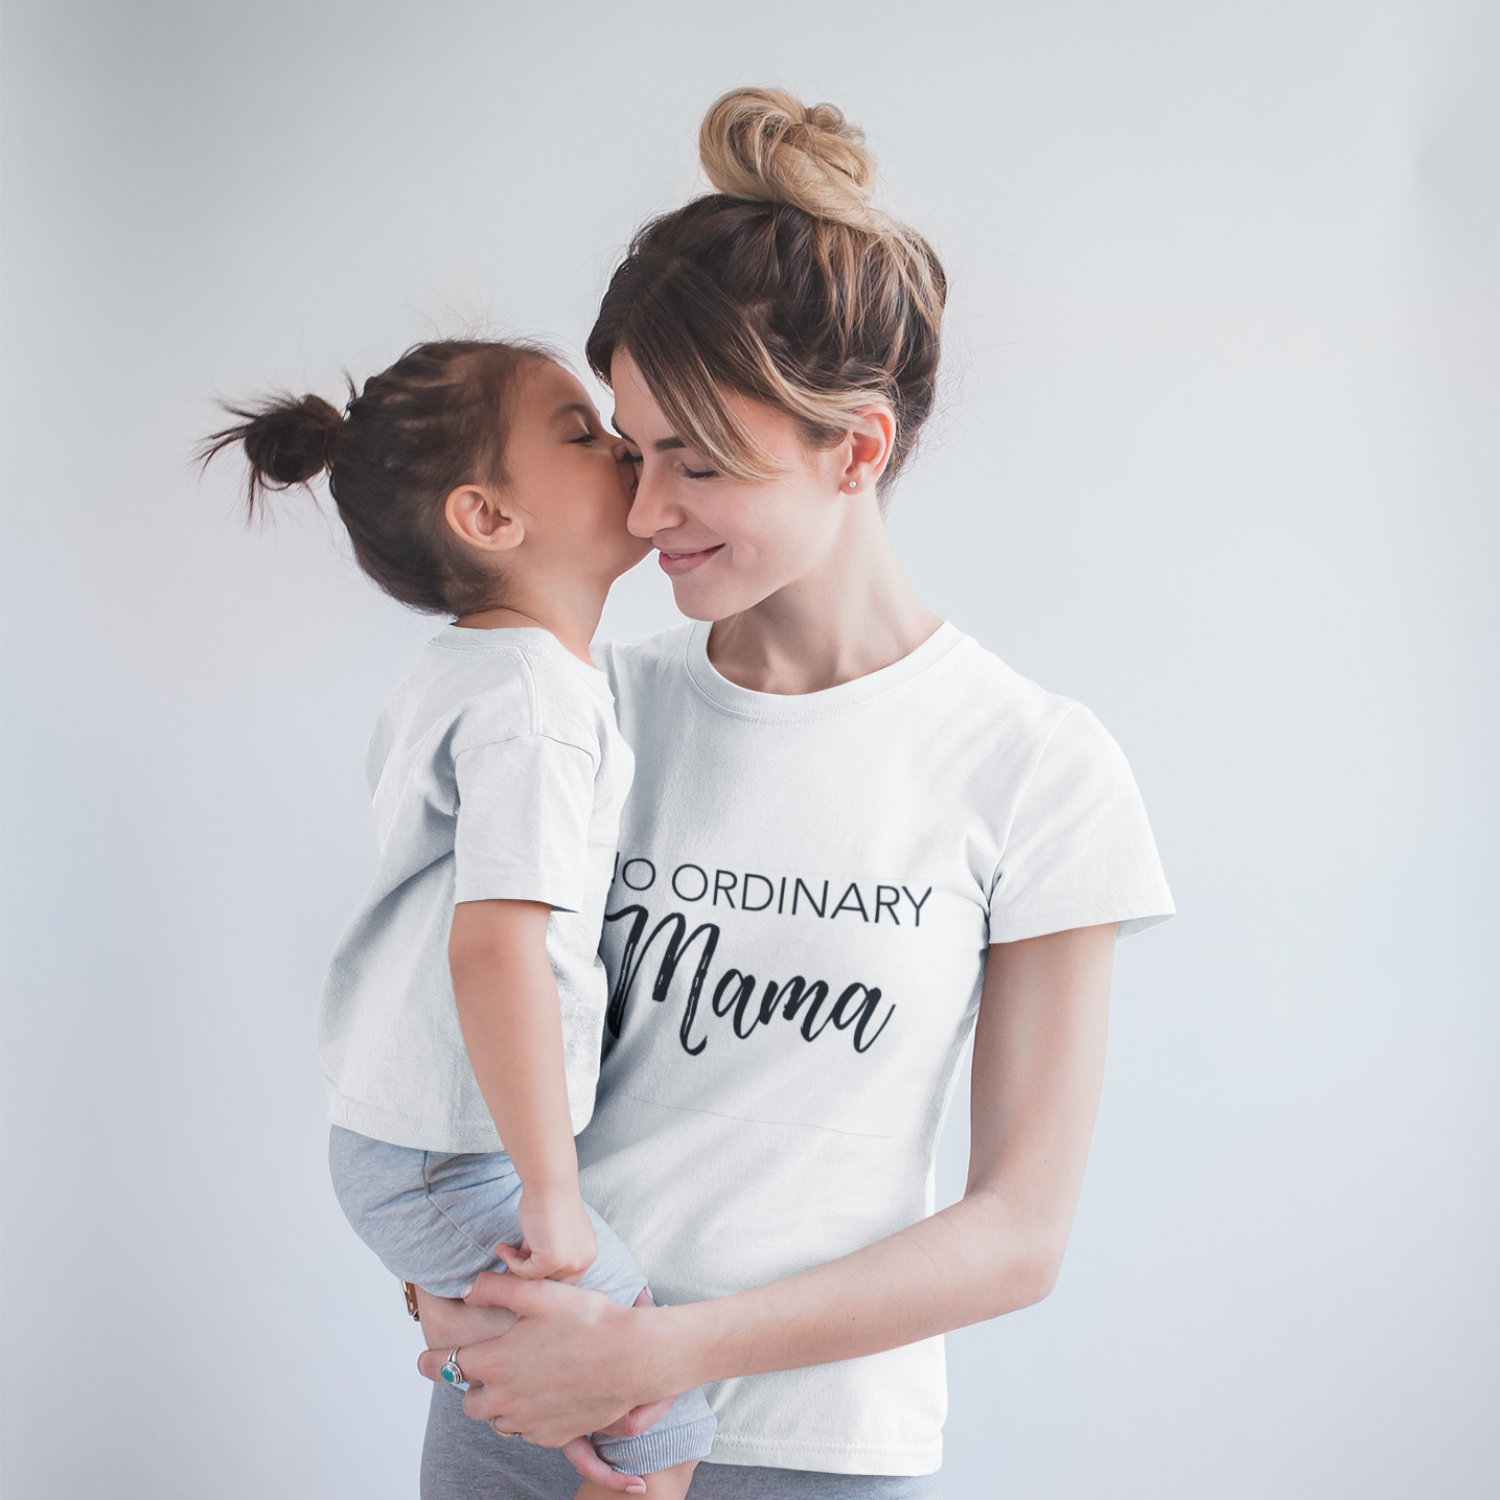 Tee - No Ordinary Mama - Multi colors